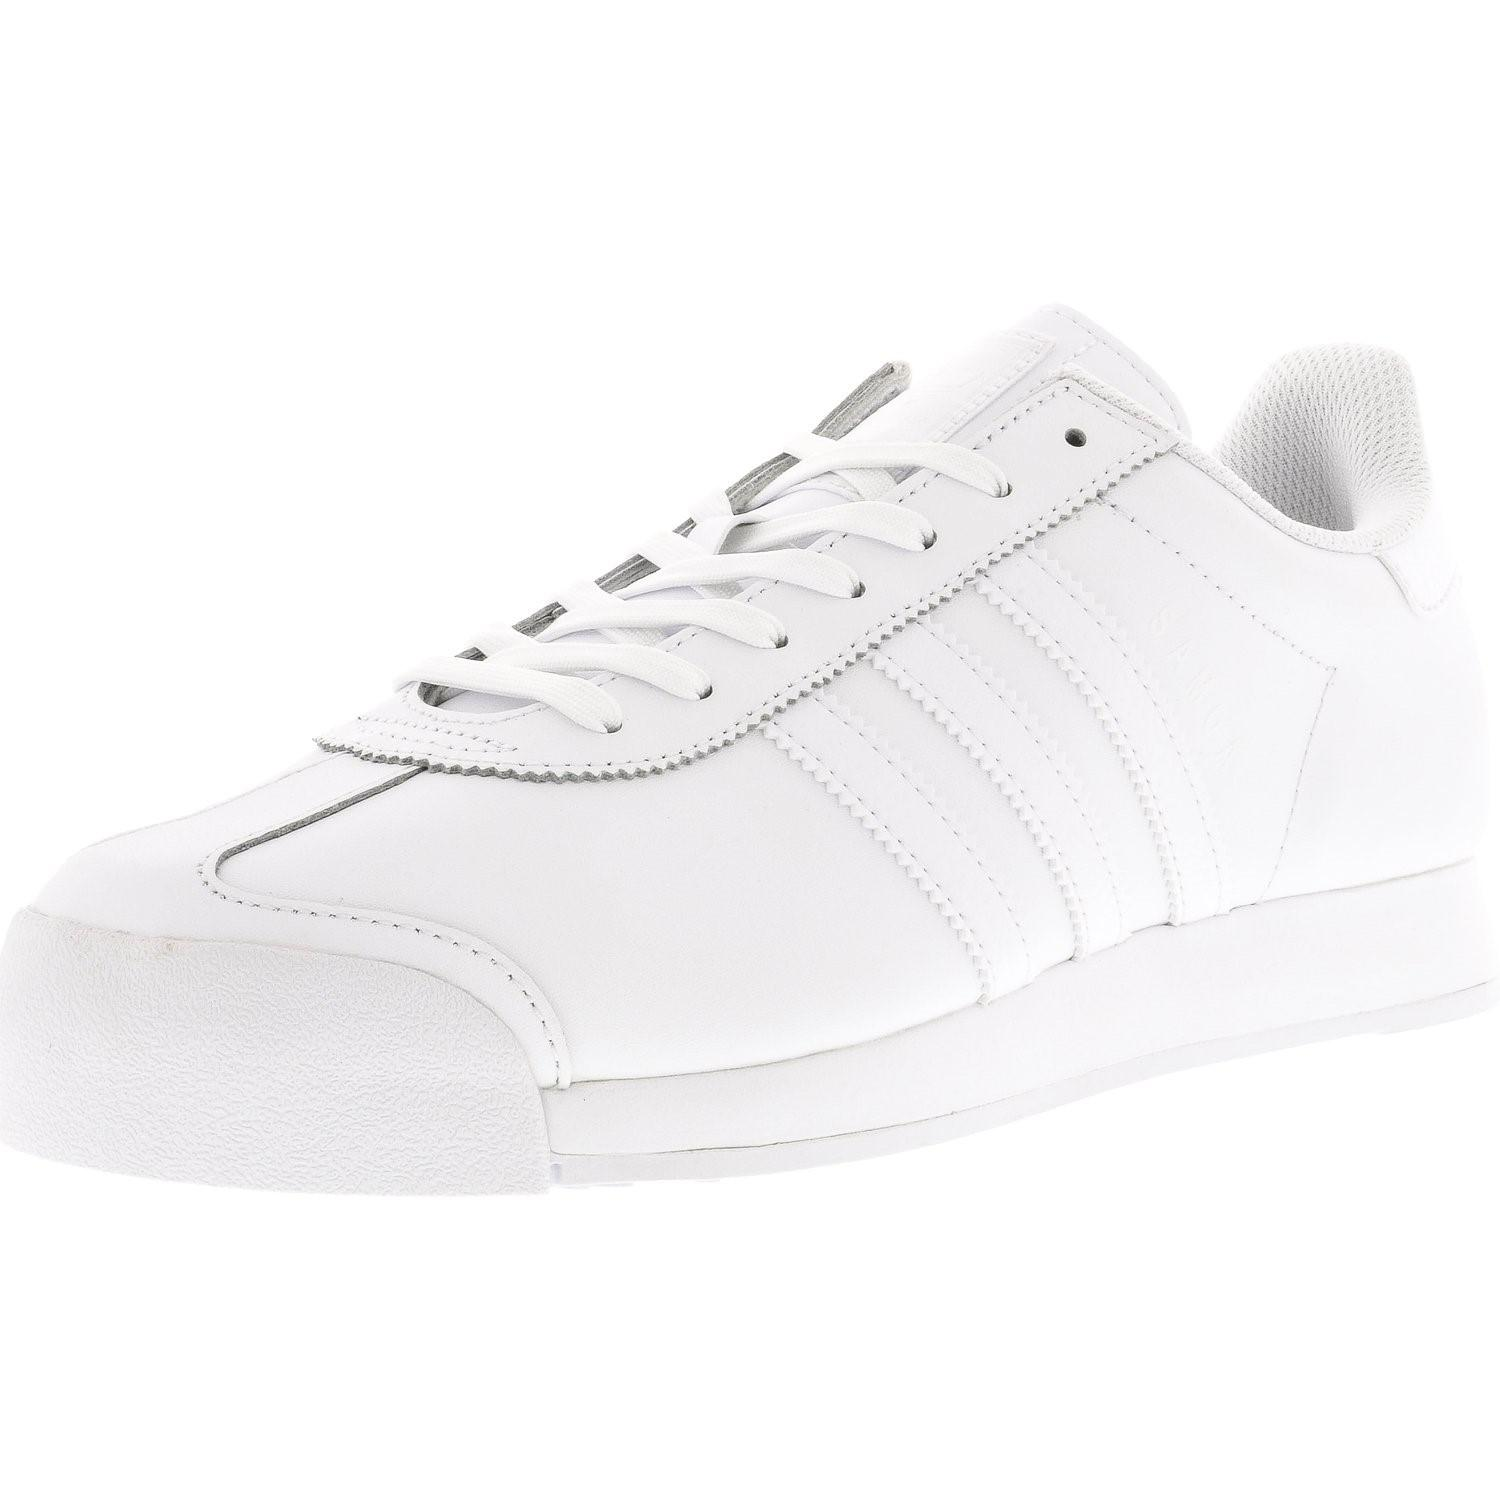 hot sale online 63a03 c512a Lyst - Adidas Samoa Footwear White   Cool Grey Ankle-high Leather ...